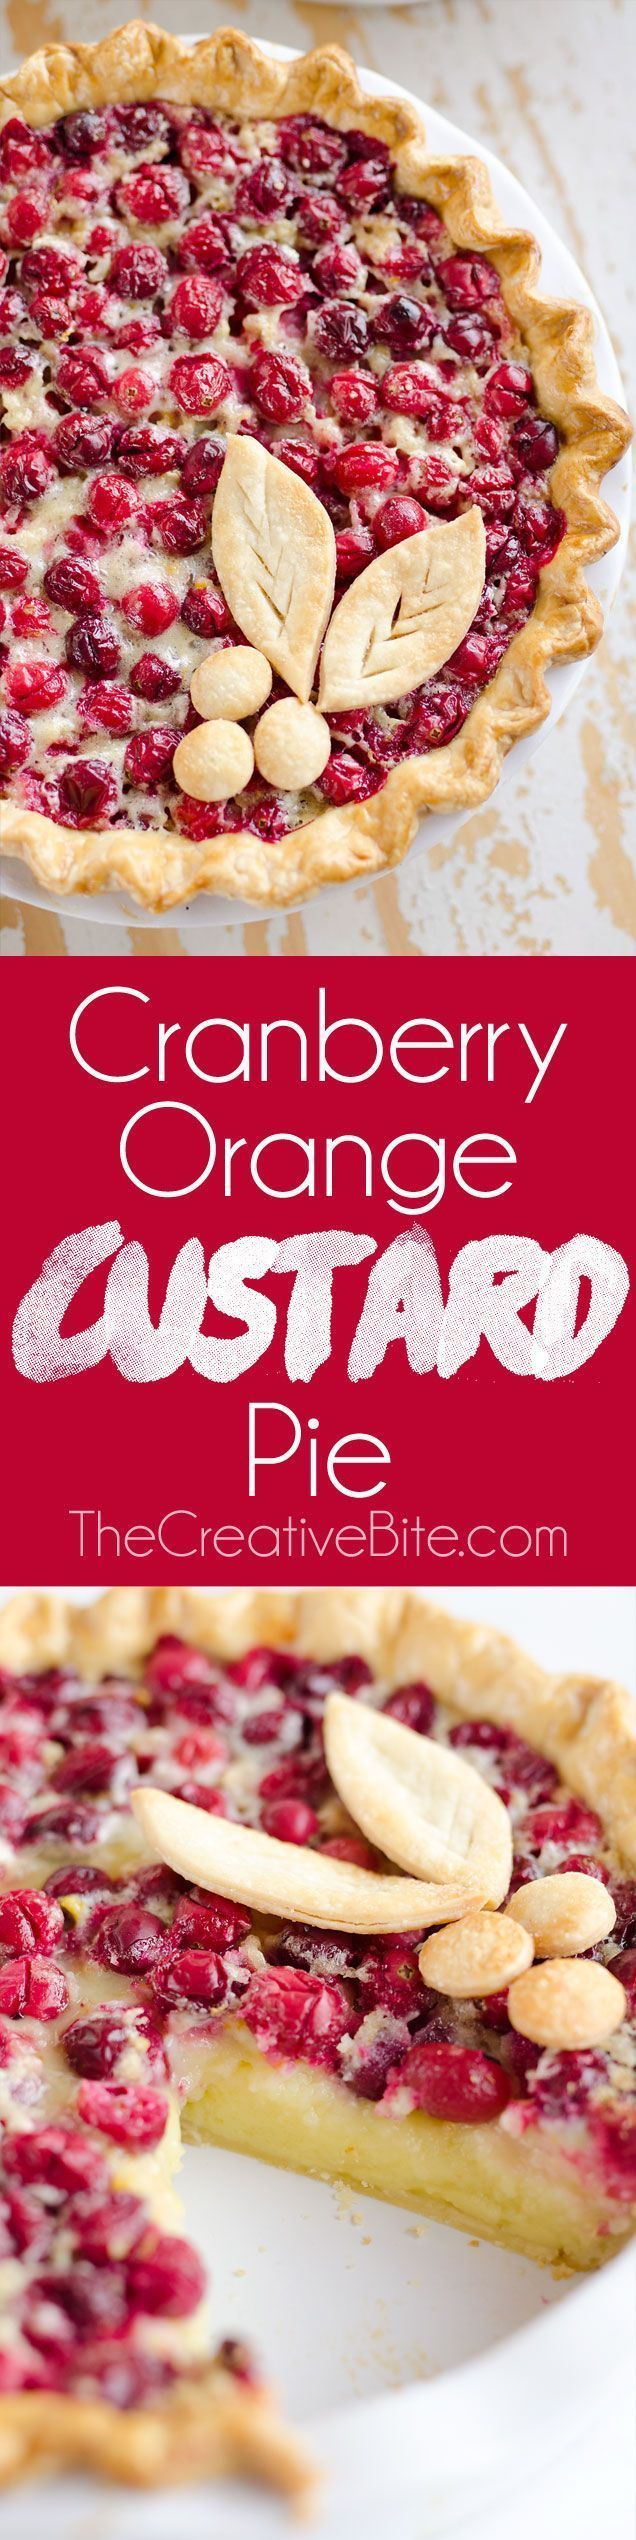 Cranberry Orange Custard Pie is a festive and unique dessert recipe to add to your holiday menu. A flaky pie crust is filled with silky sweet custard laced with orange zest and tart cranberries for a special treat you won't forget!